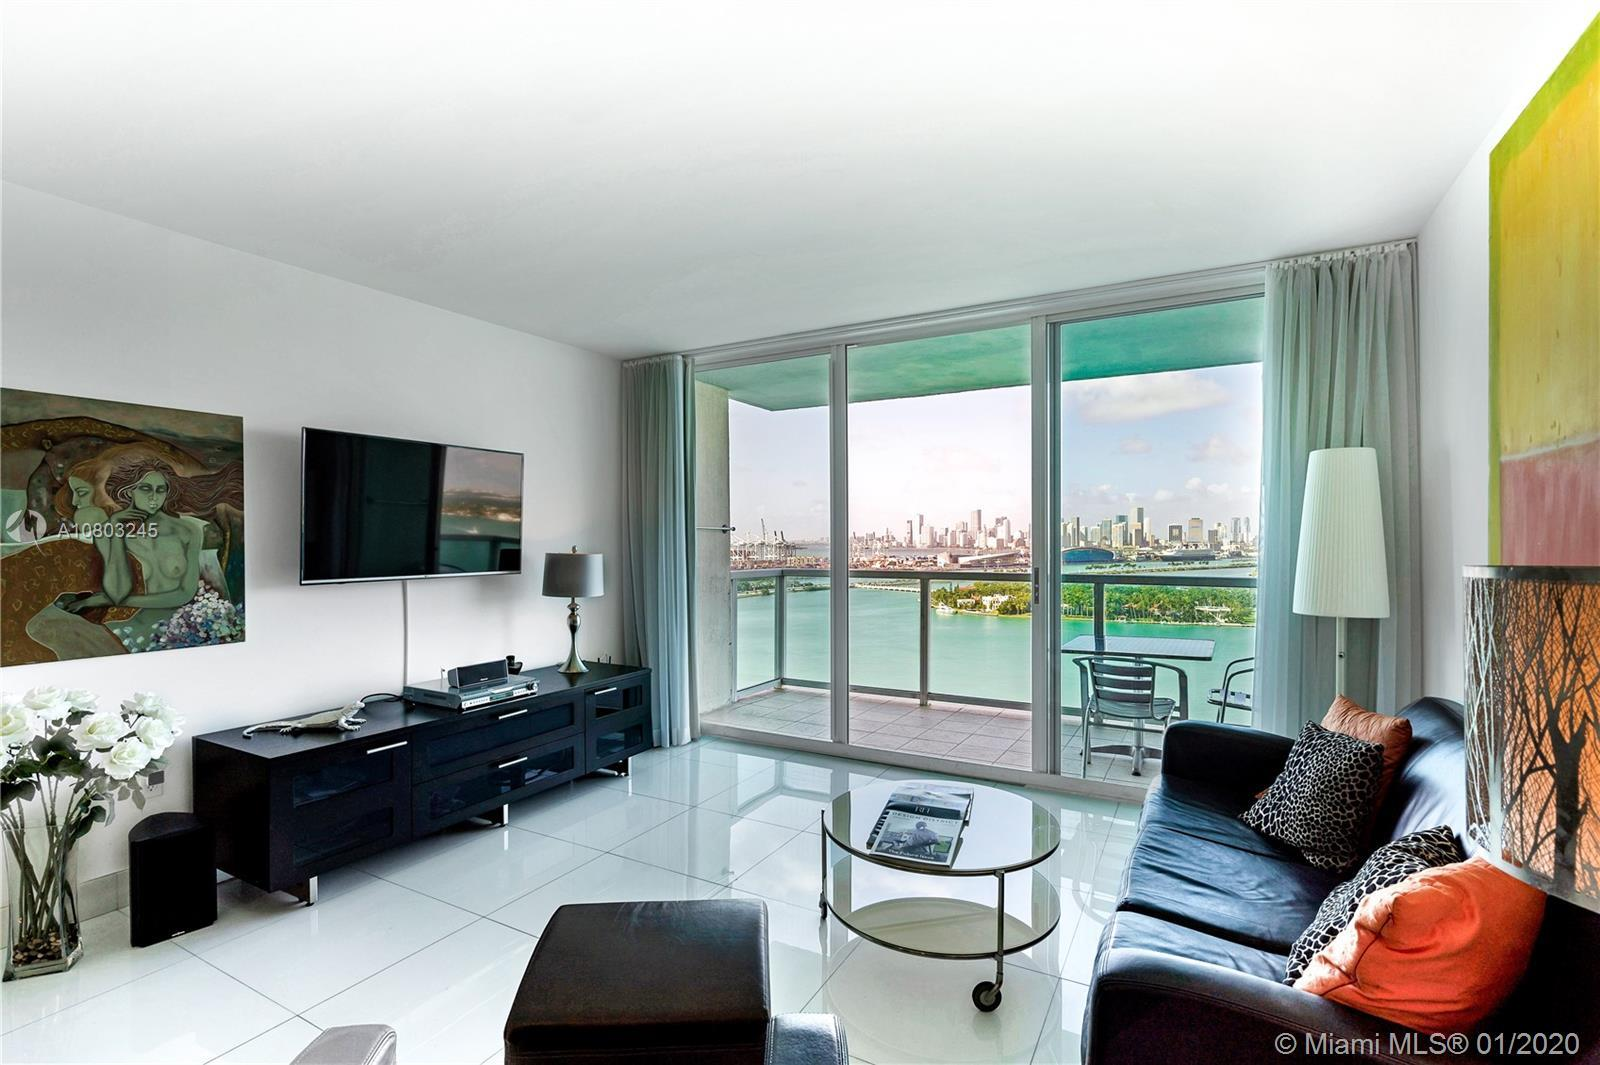 Spectacular and endless views of Biscayne Bay and the Miami skyline. This stunning 2 BD/2 BA 1225sqf